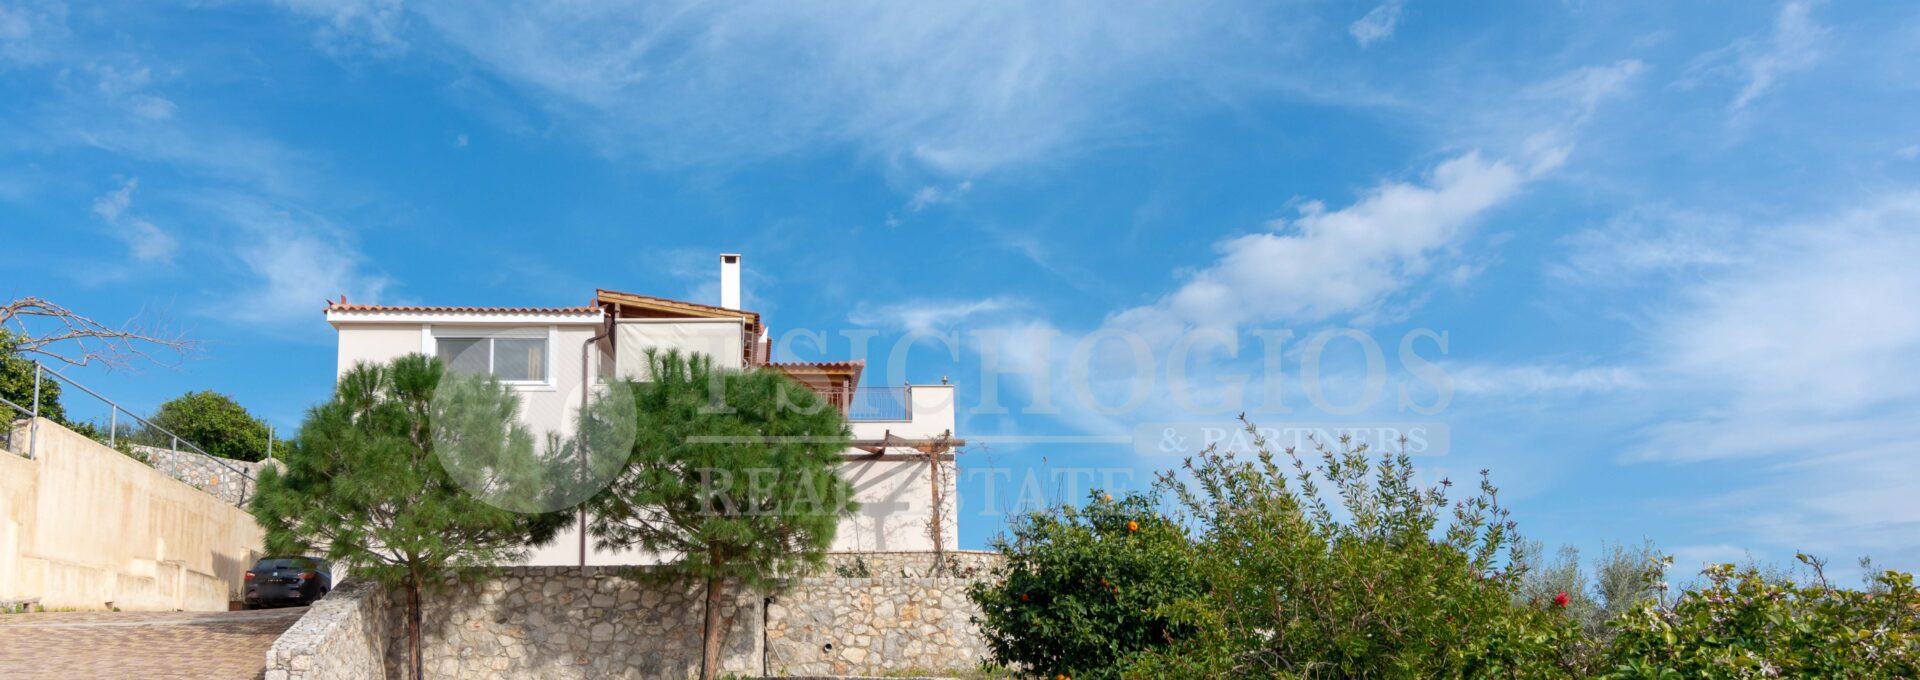 for_sale_house_107_square_meters_3_bedrooms_sea_view_ermioni_greece 1 1 (45)